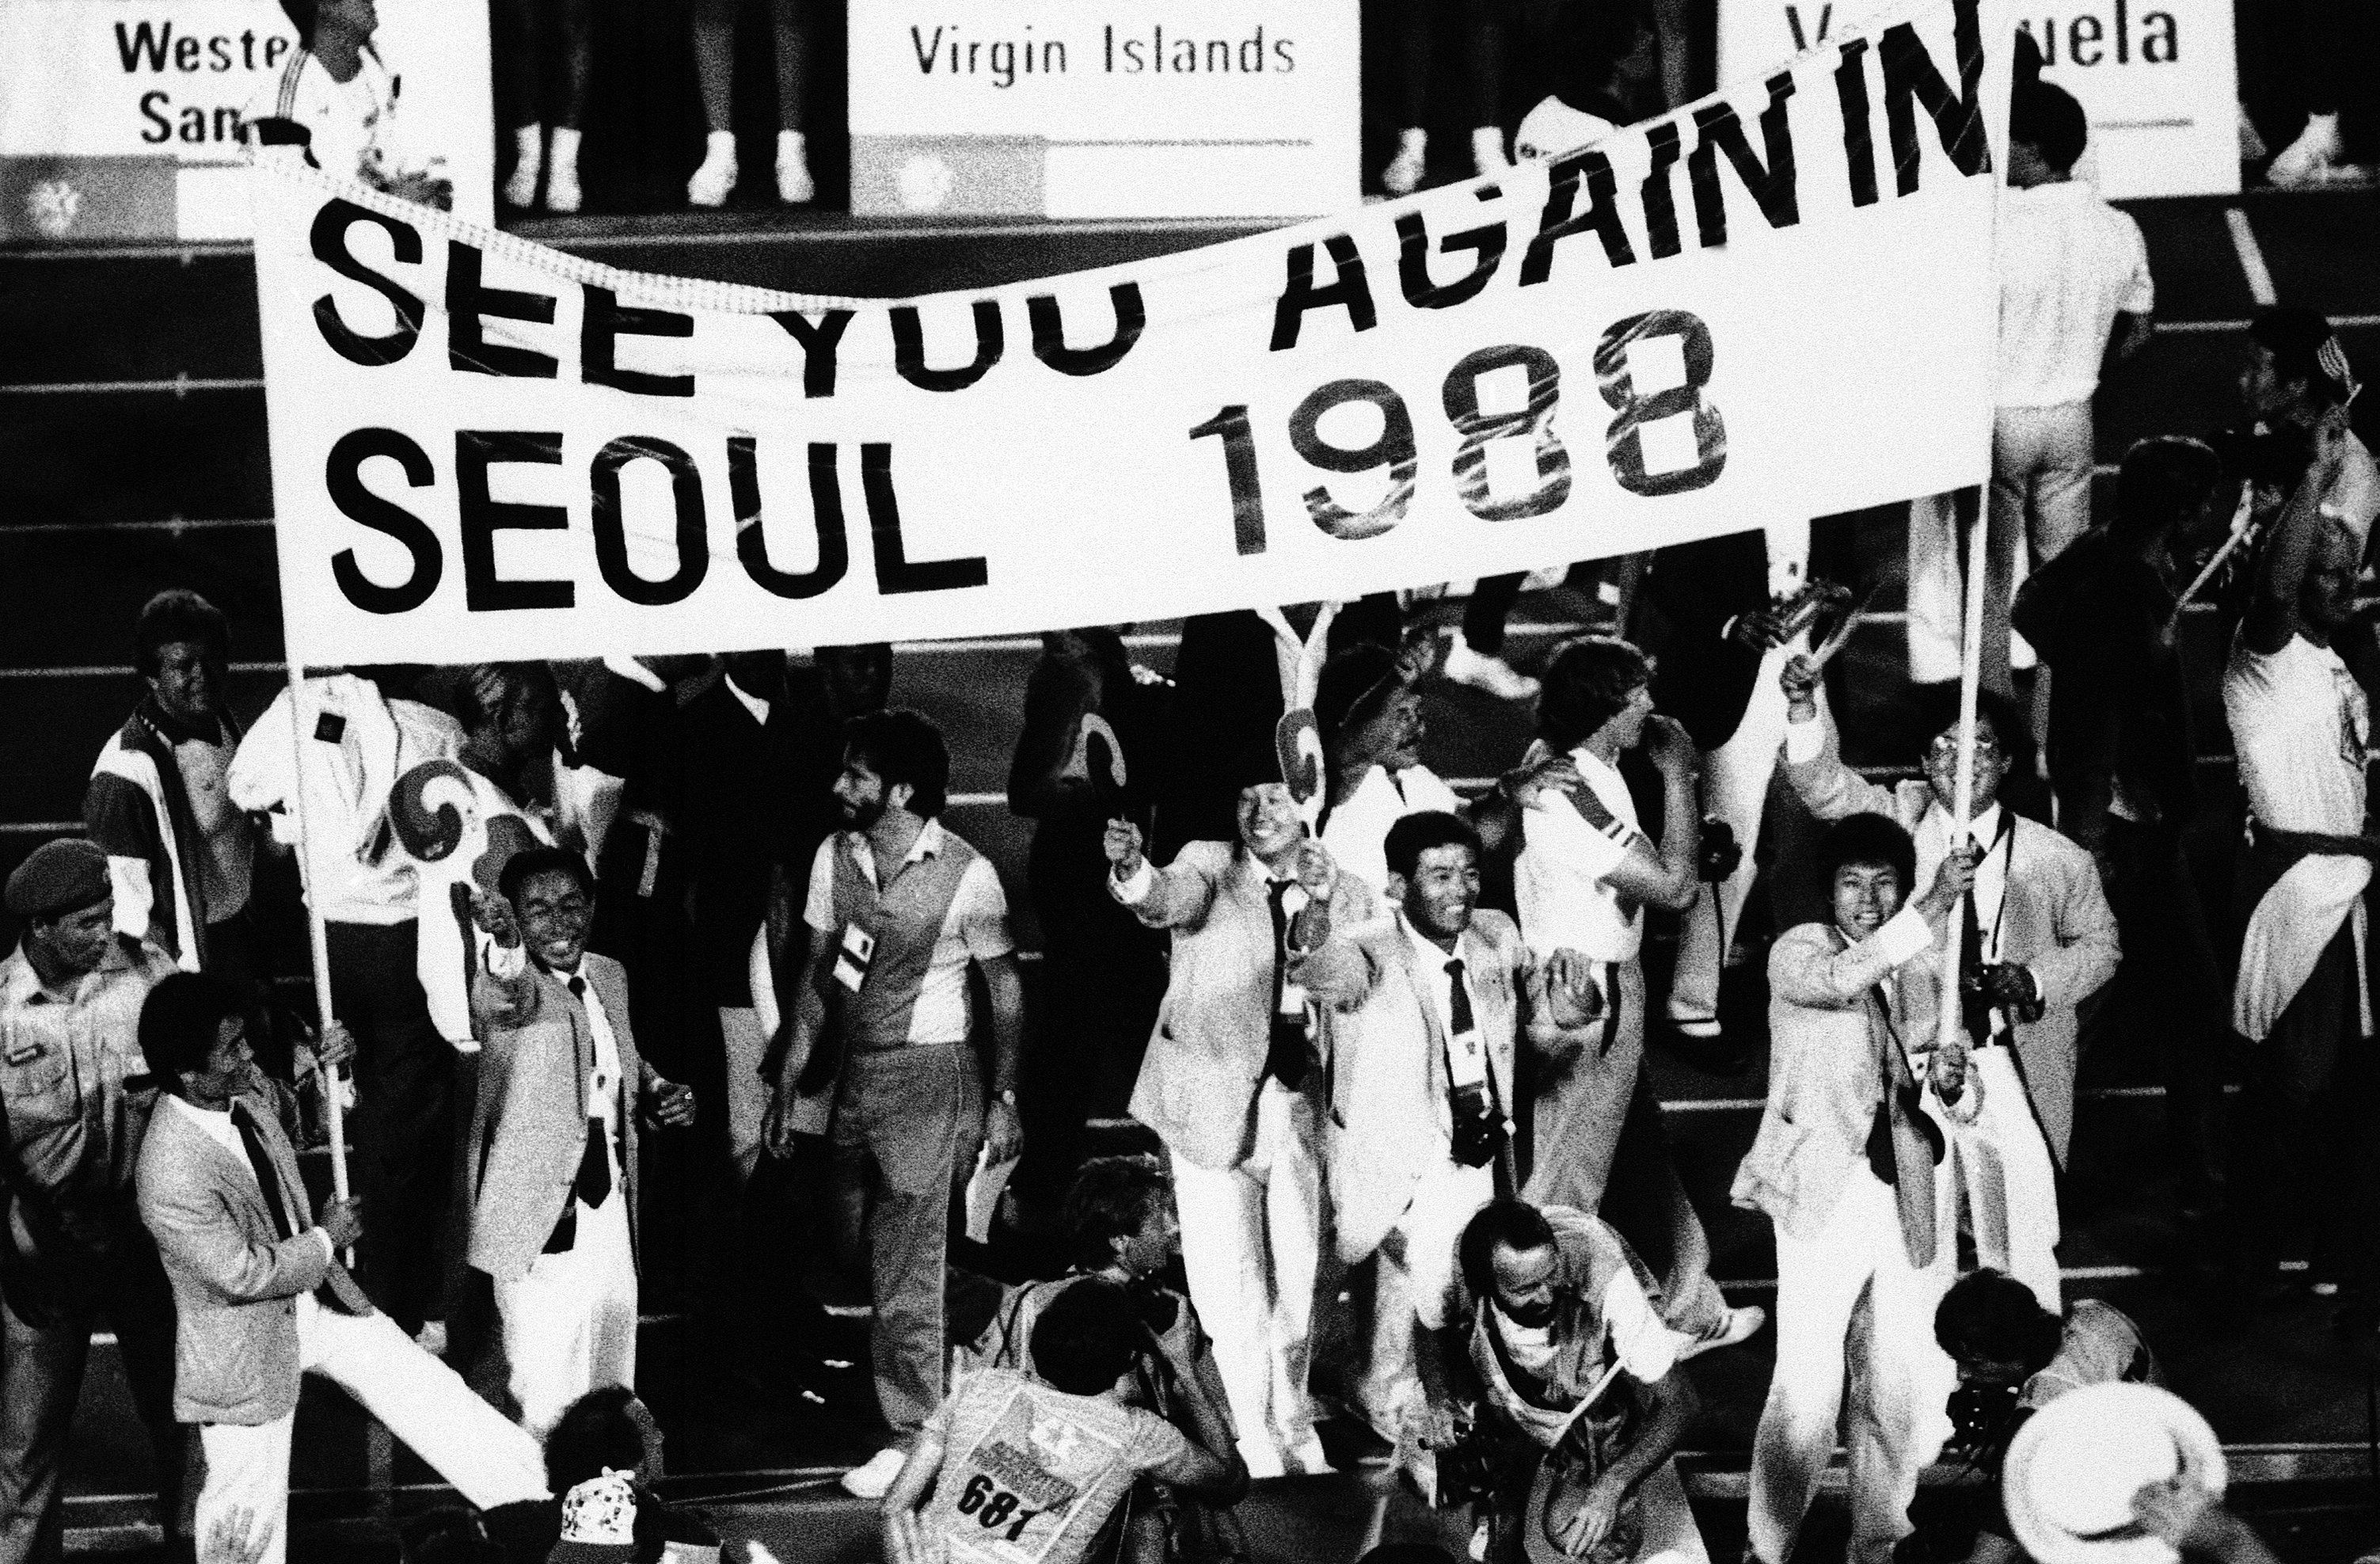 "<div class=""meta image-caption""><div class=""origin-logo origin-image ap""><span>AP</span></div><span class=""caption-text"">South Korean athletes hold a banner during the closing ceremonies of the XXIII Olympiad at the Coliseum in Los Angeles, Aug. 12, 1984. (AP Photo/Lionel Cironneau)</span></div>"